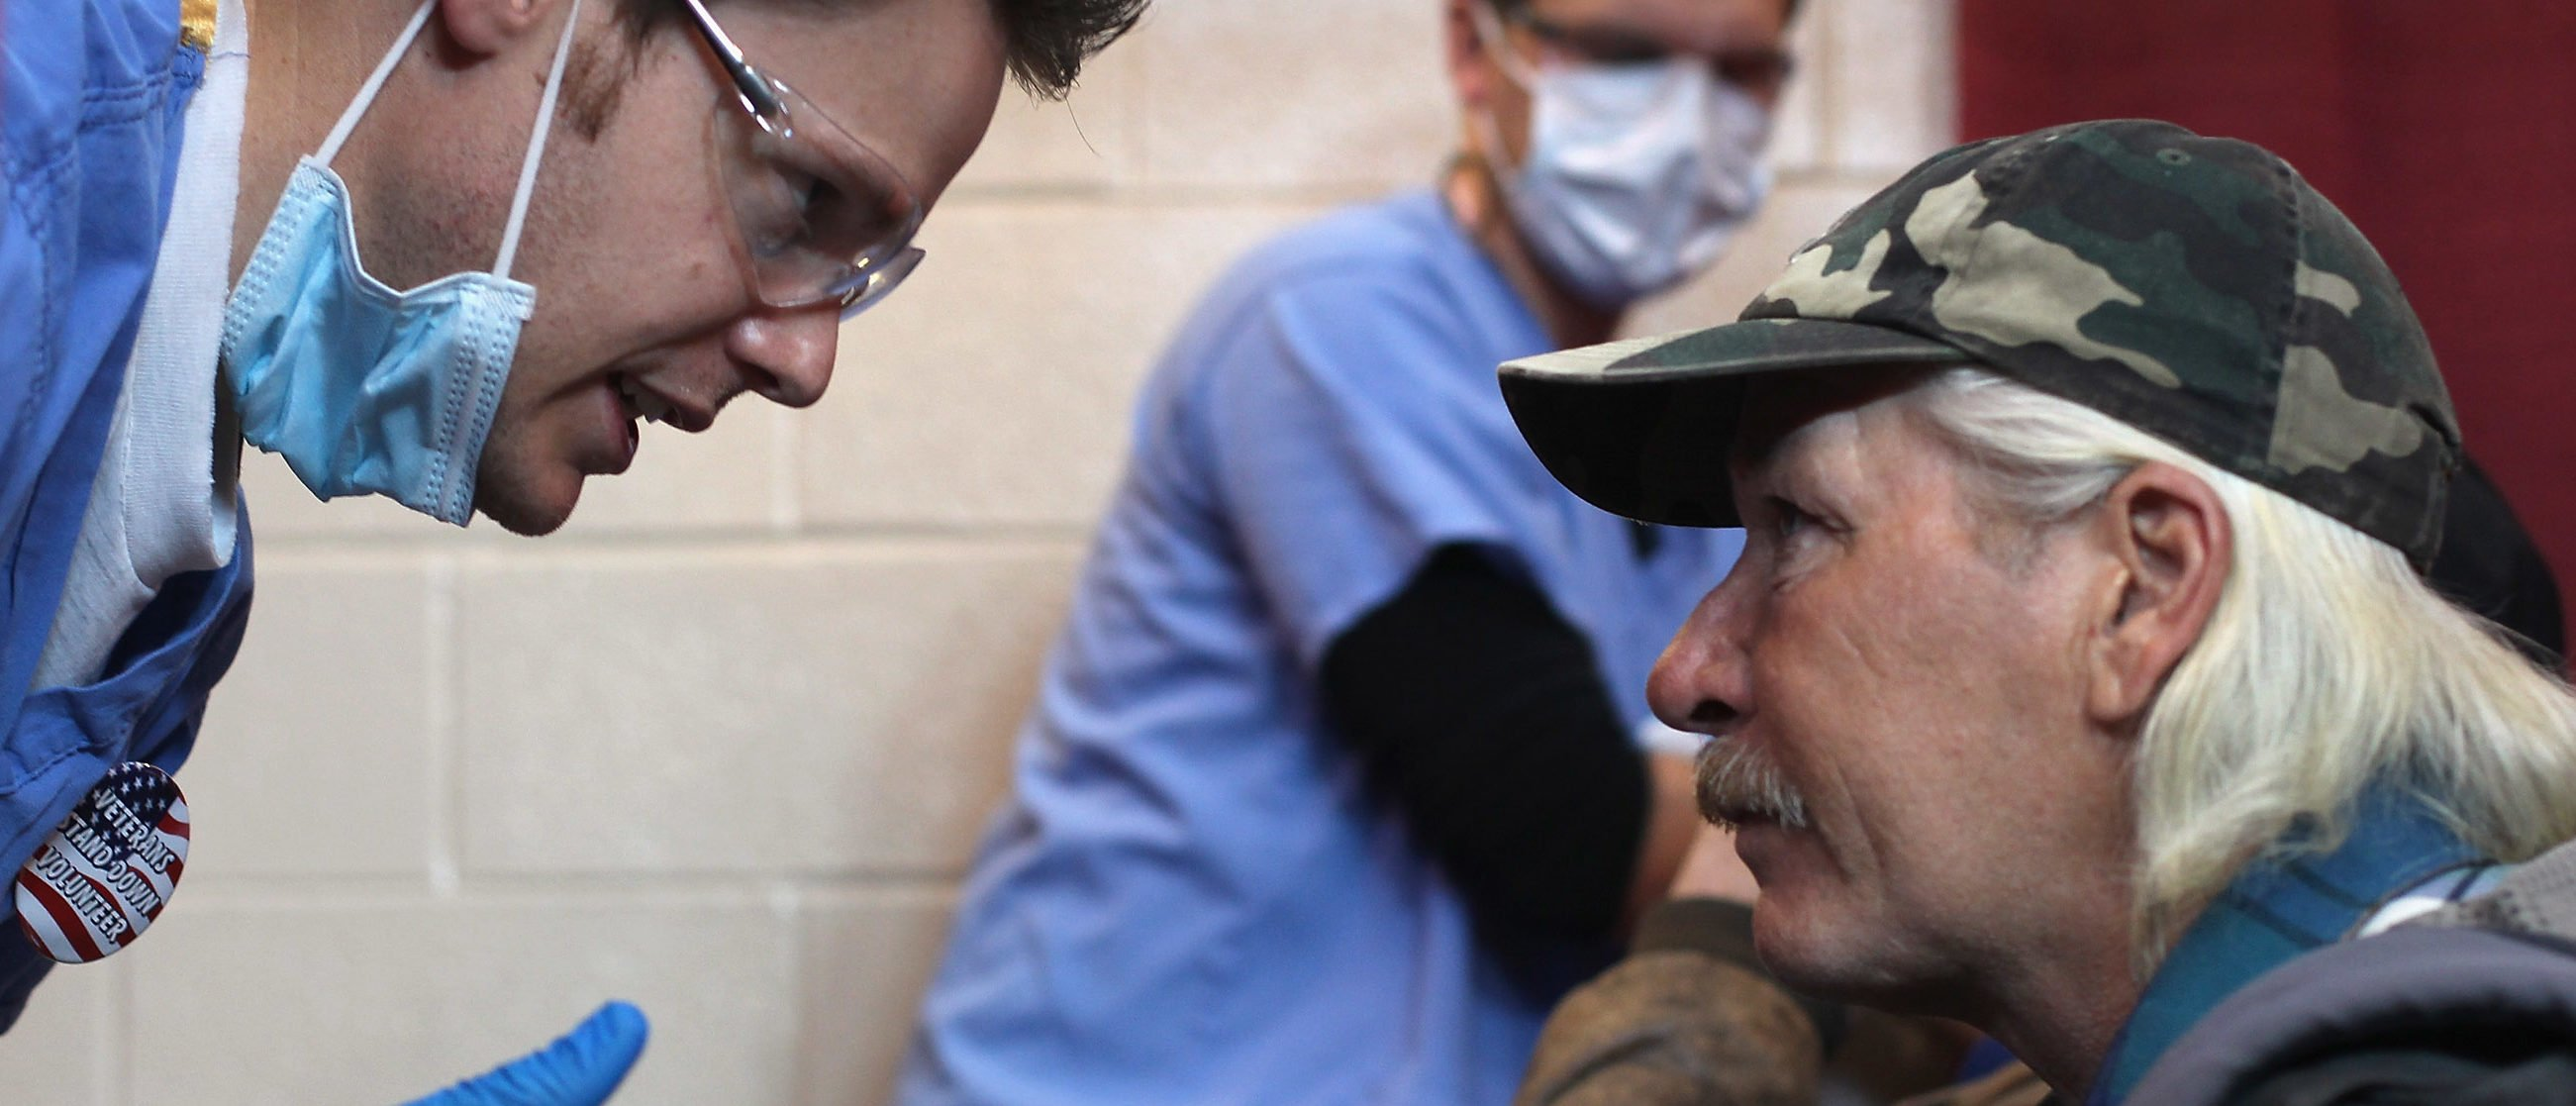 """Homeless U.S. Army veteran and unemployed carpenter Steven Wise (R), receives a dental checkup at a """"Stand Down"""" event hosted by the Department of Veterans Affairs on November 3, 2011 in Denver, Colorado. (Photo by John Moore/Getty Images)"""